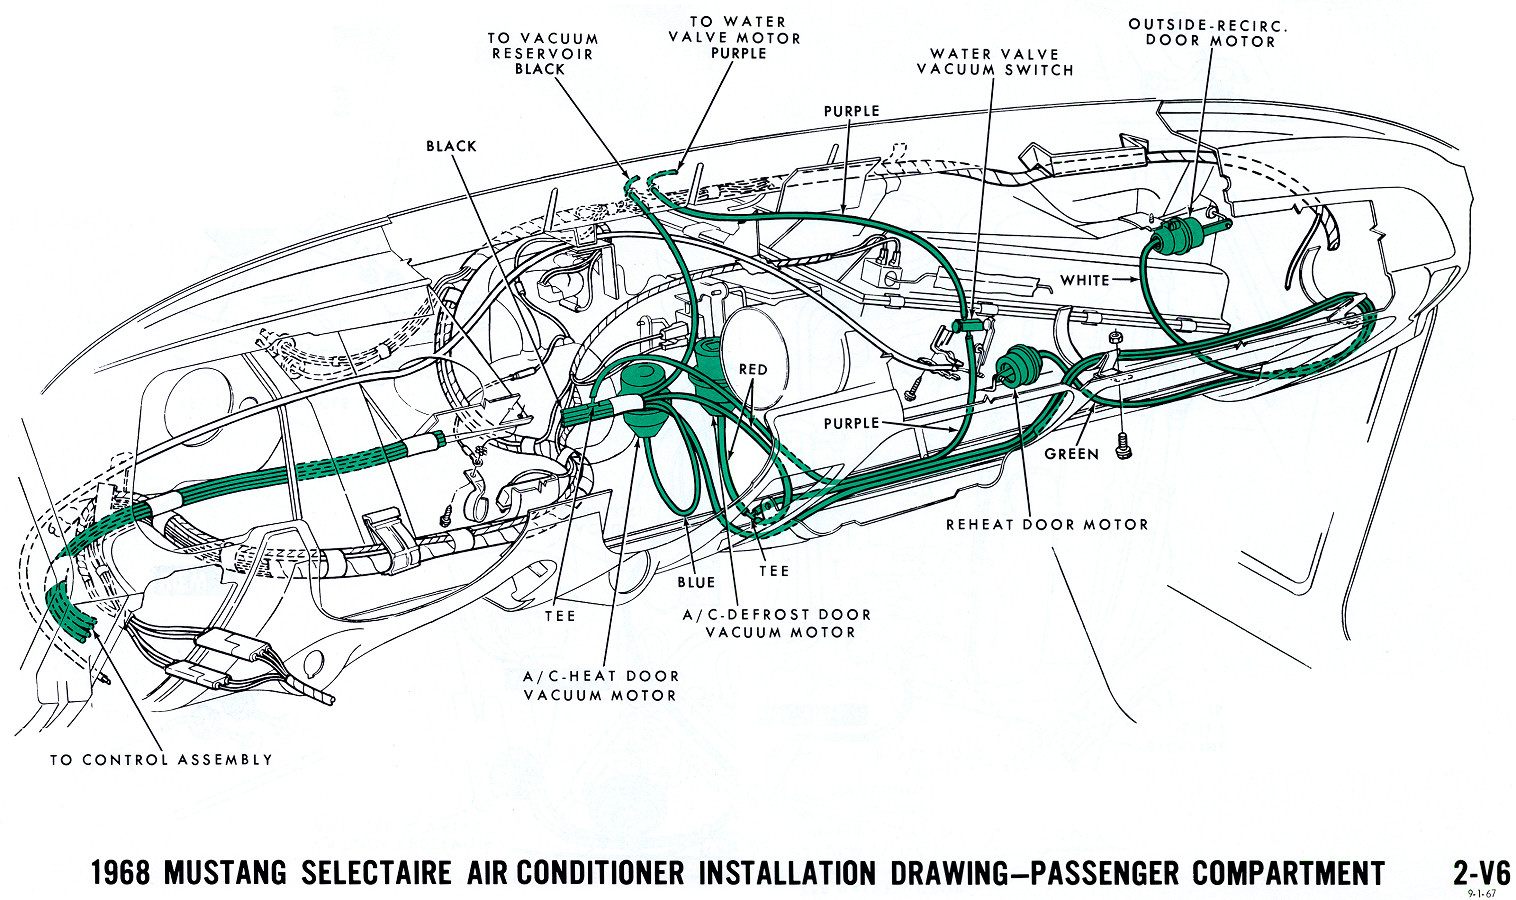 1968 Mustang Wiring Diagrams And Vacuum Schematics Average Joe Au Falcon Dash Diagram Air Conditioning Interior